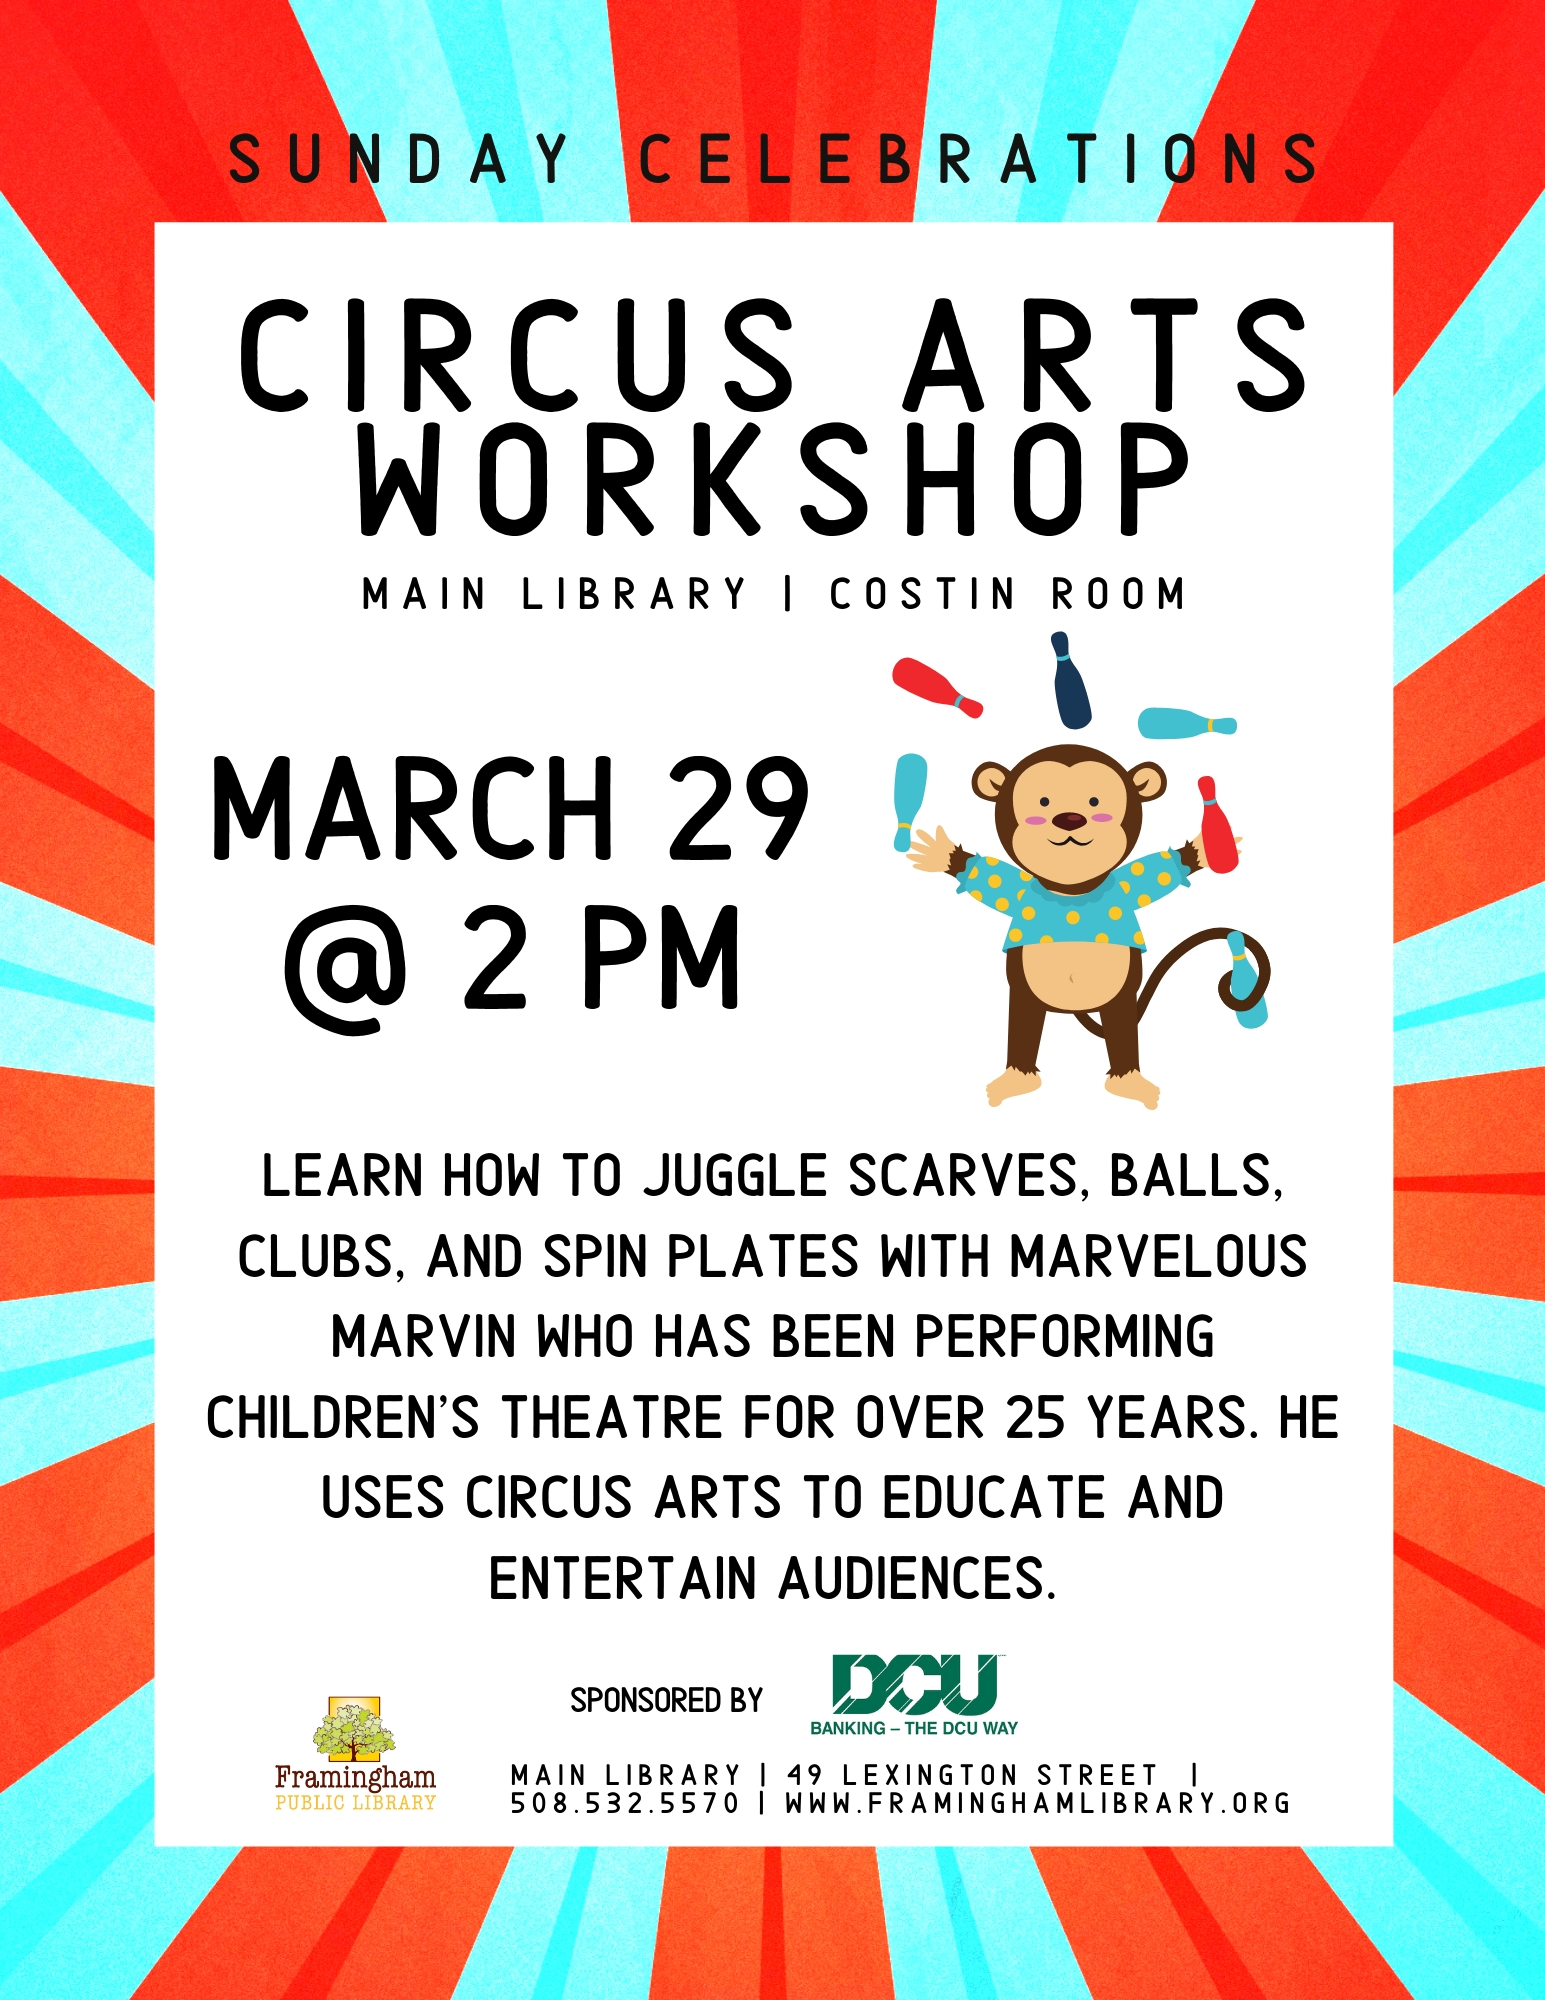 Sunday Celebrations: Circus Arts Workshop thumbnail Photo